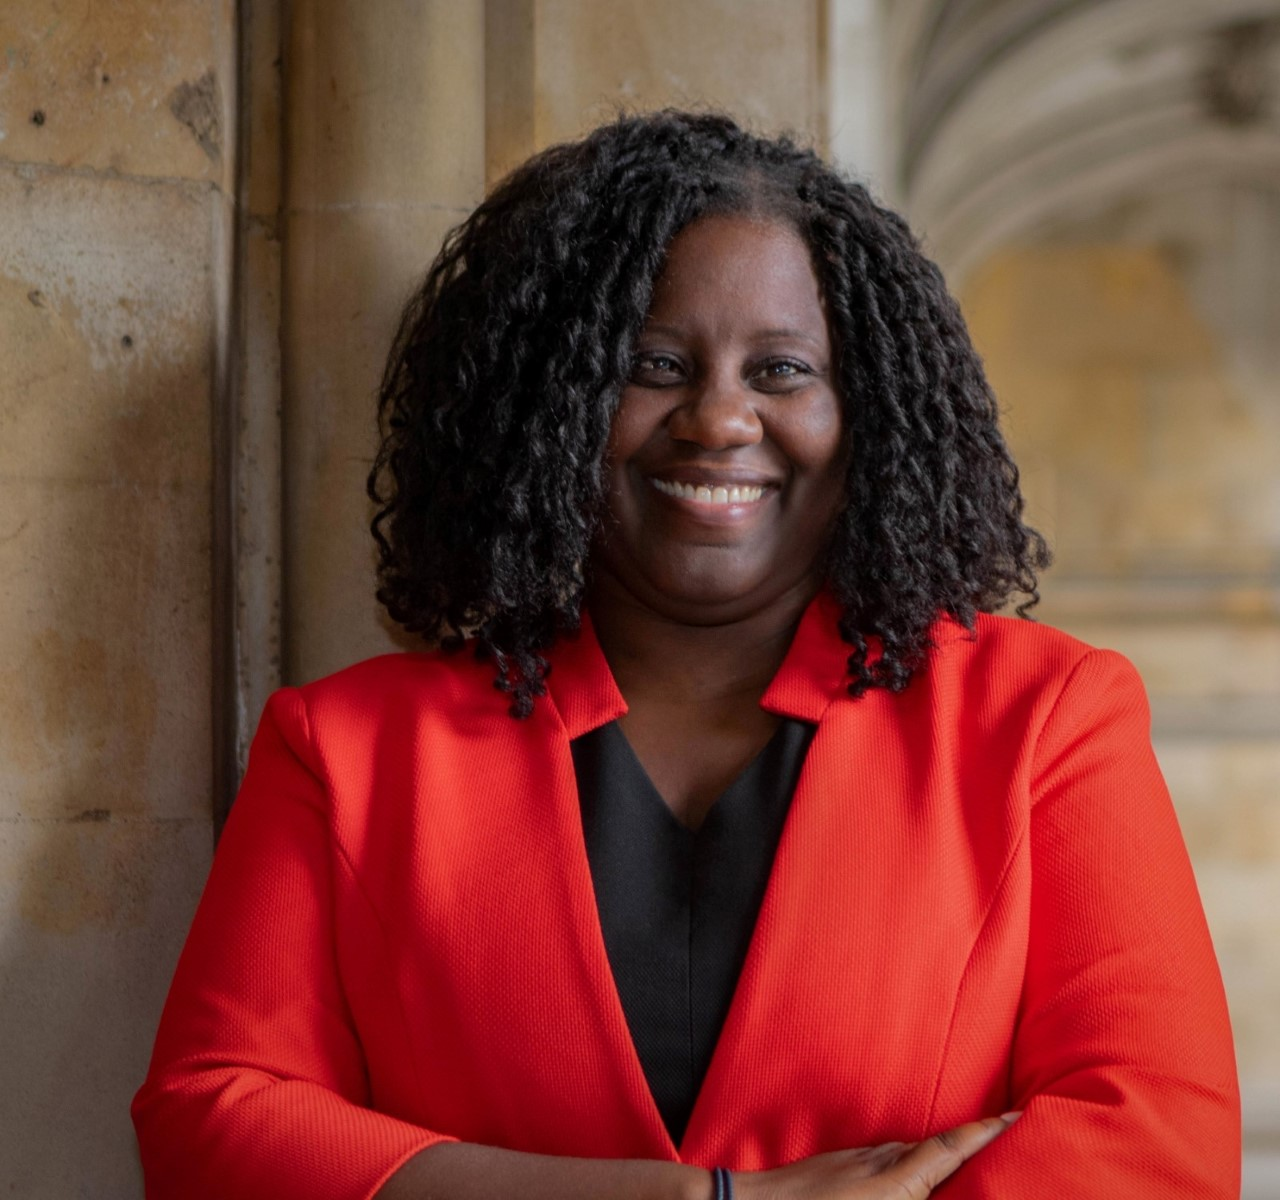 """If the prime minister really meant it when he said there is much more to do then why doesn't he just get on and do it?"" asked shadow women and equalities secretary Marsha de Cordova."